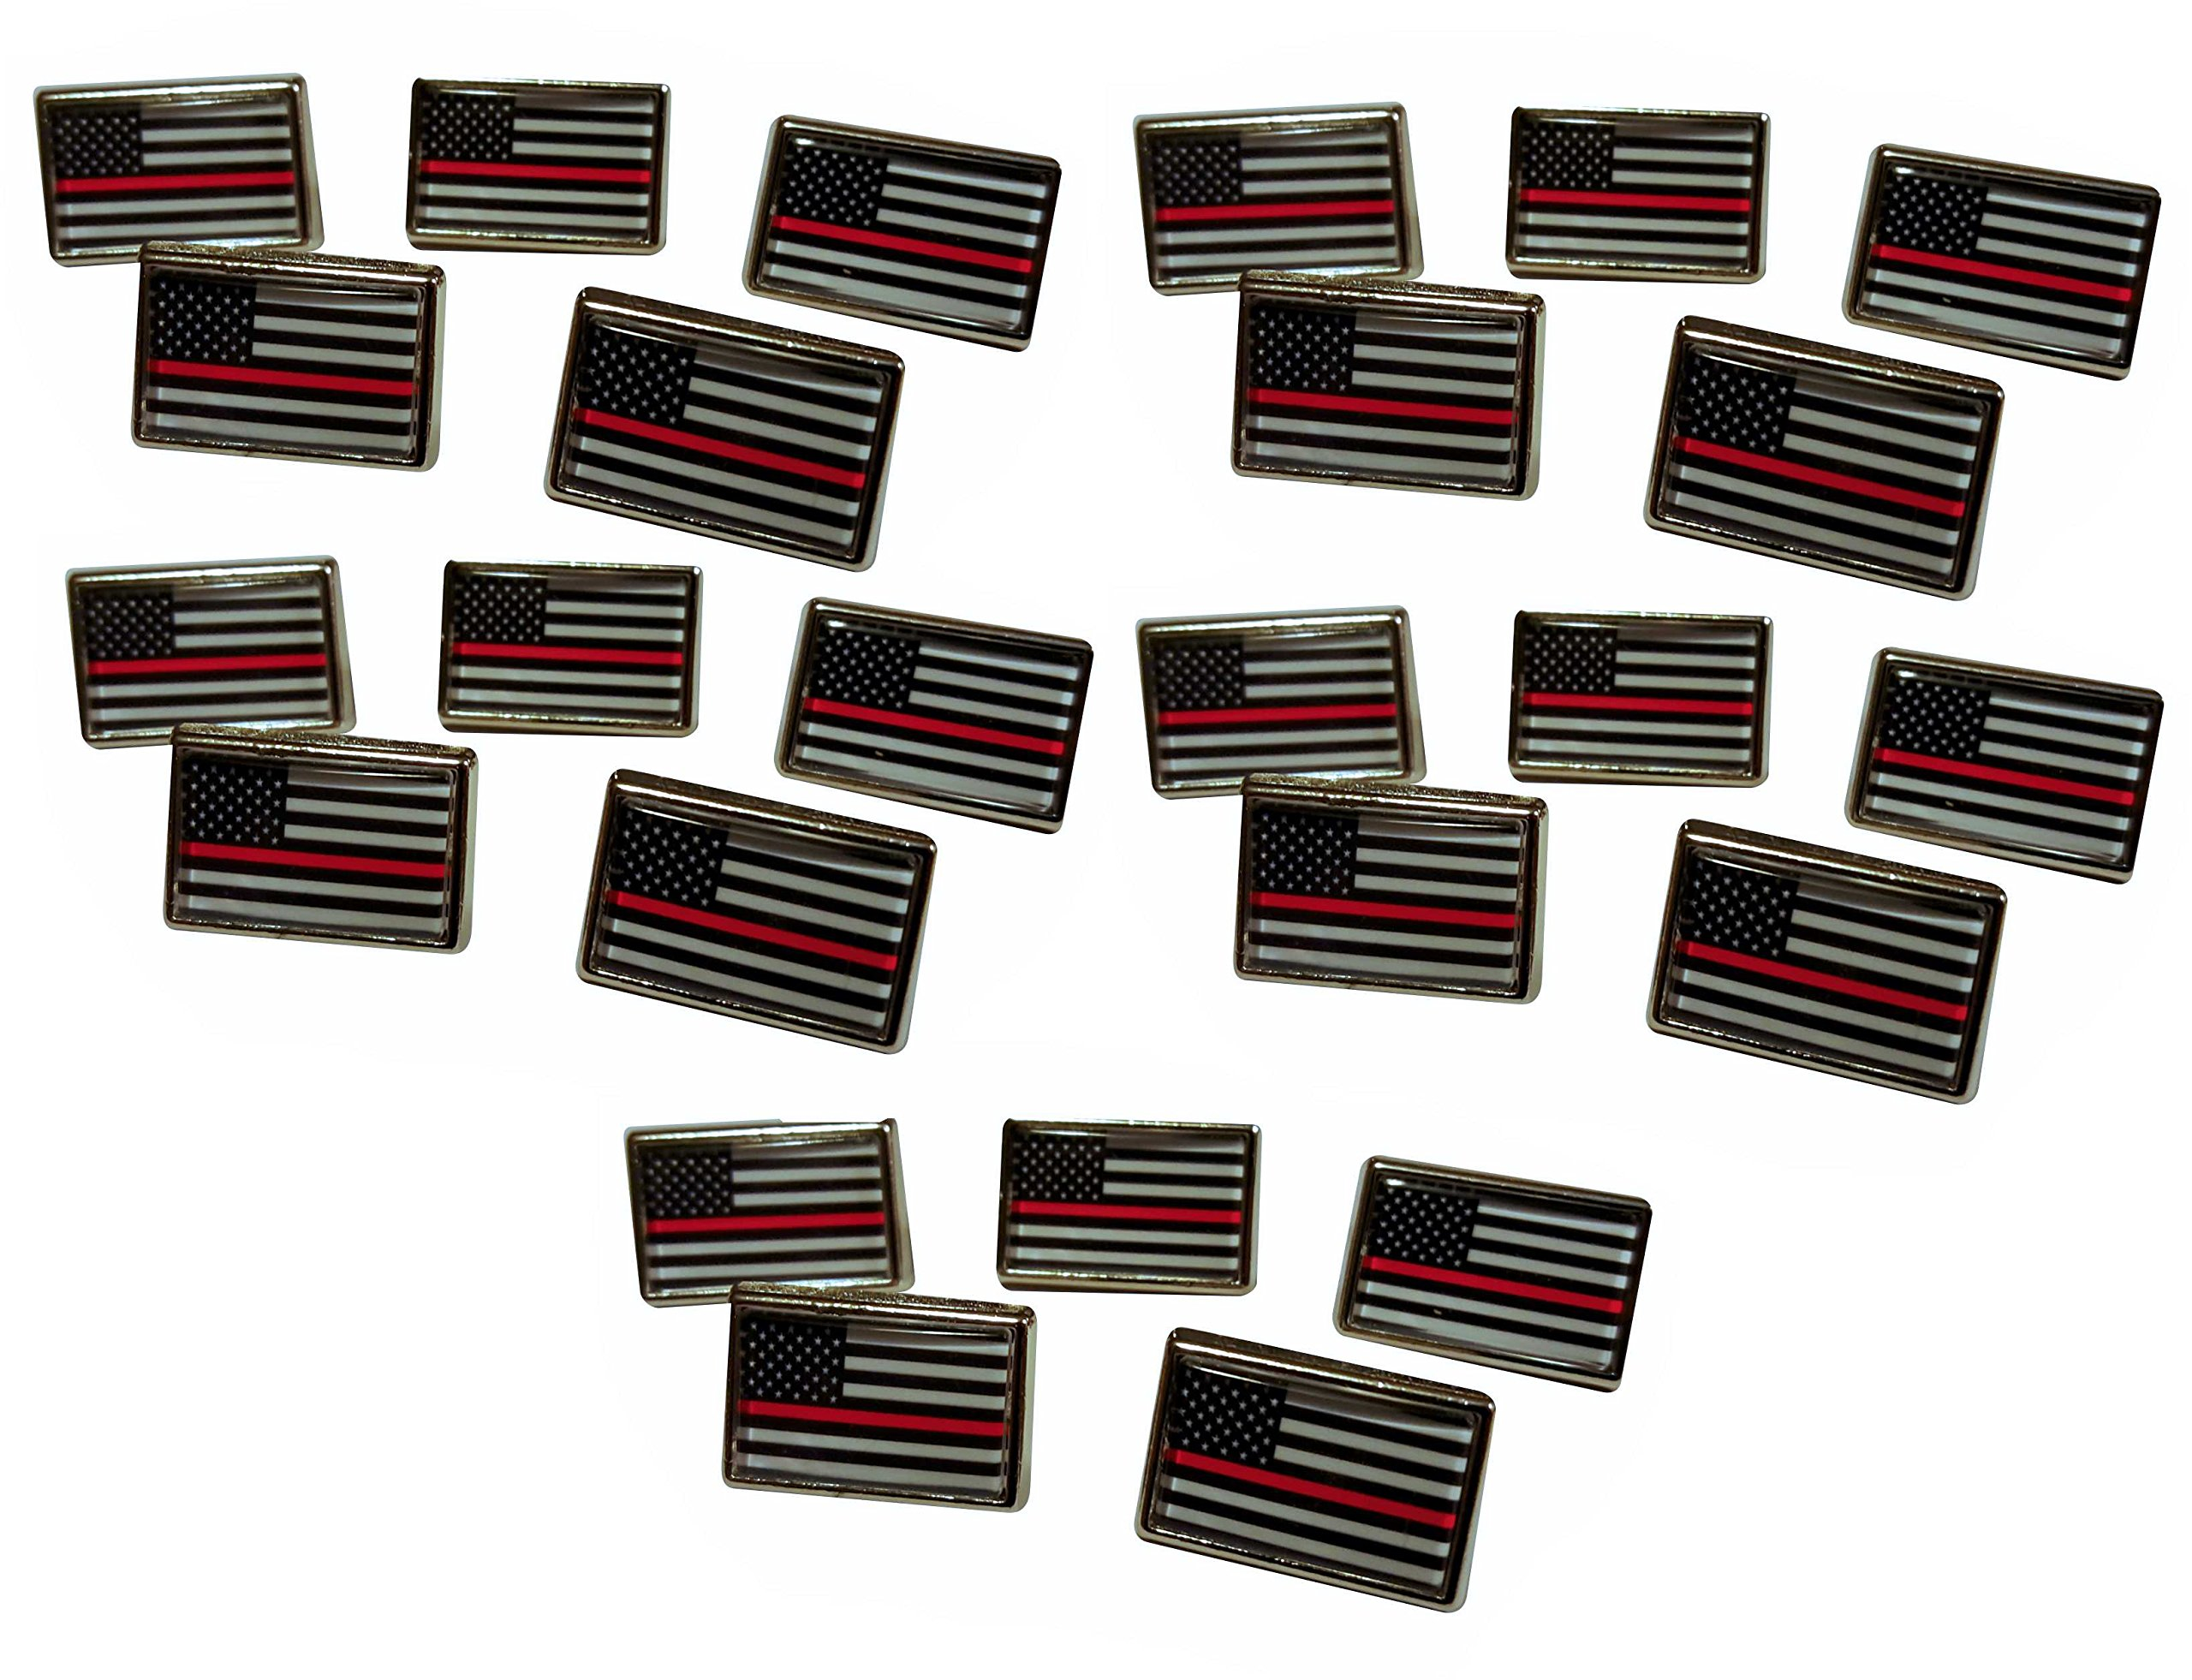 Thin Red Line Lapel Pin (25 Pack)